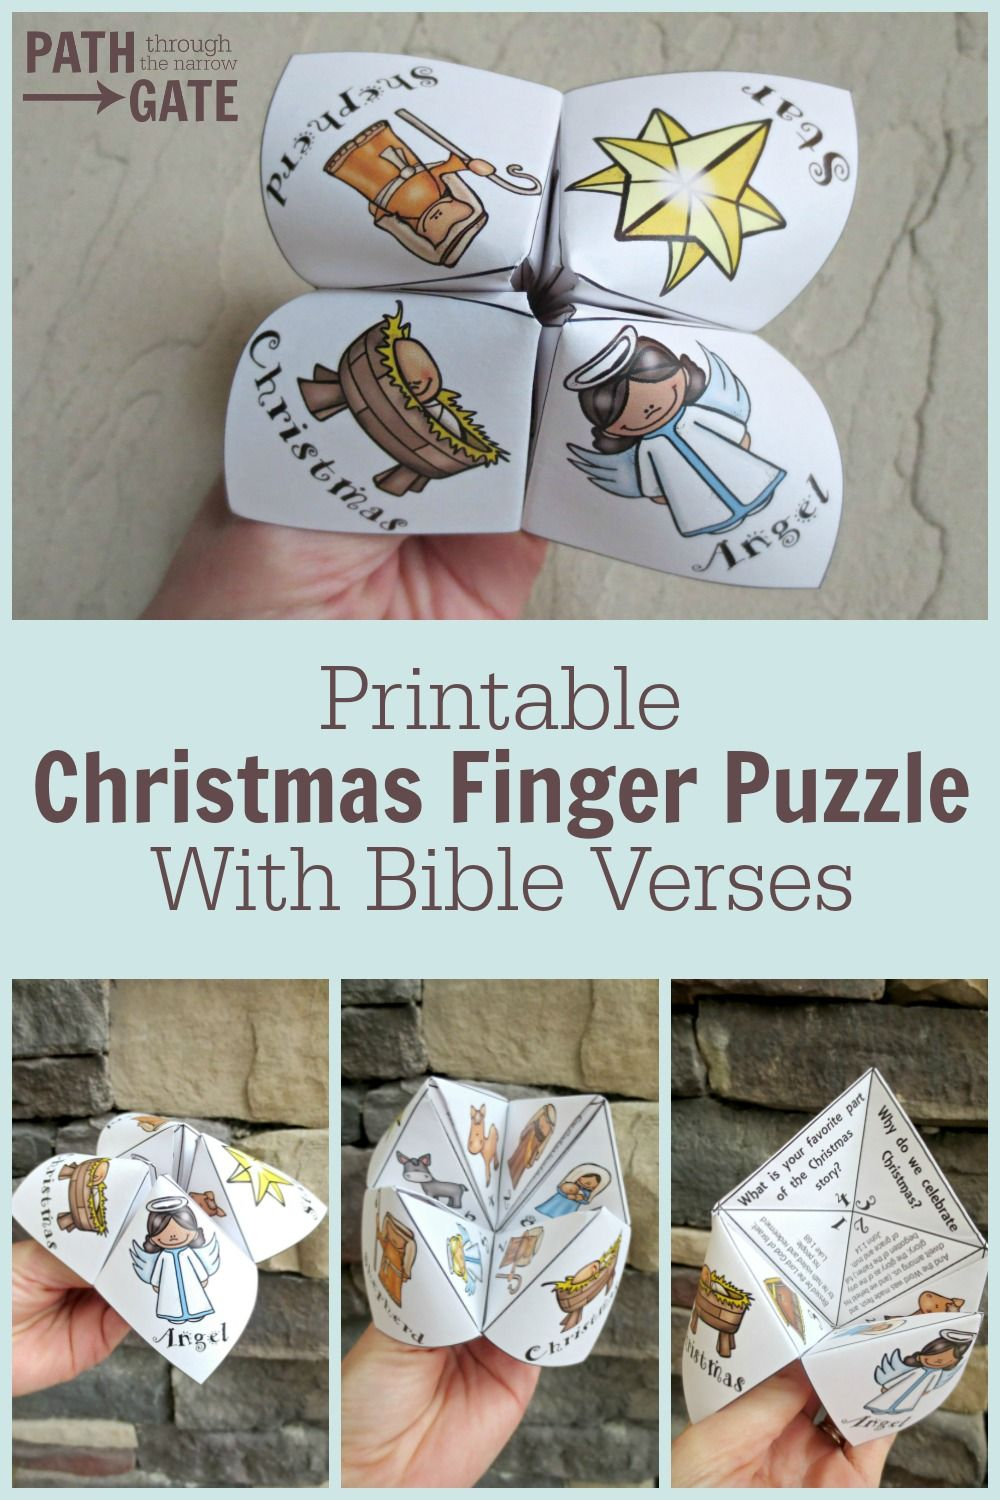 Adorable Printable Christmas Finger Puzzle With Bible Verses - These - Printable Christmas Finger Puzzle With Bible Verses